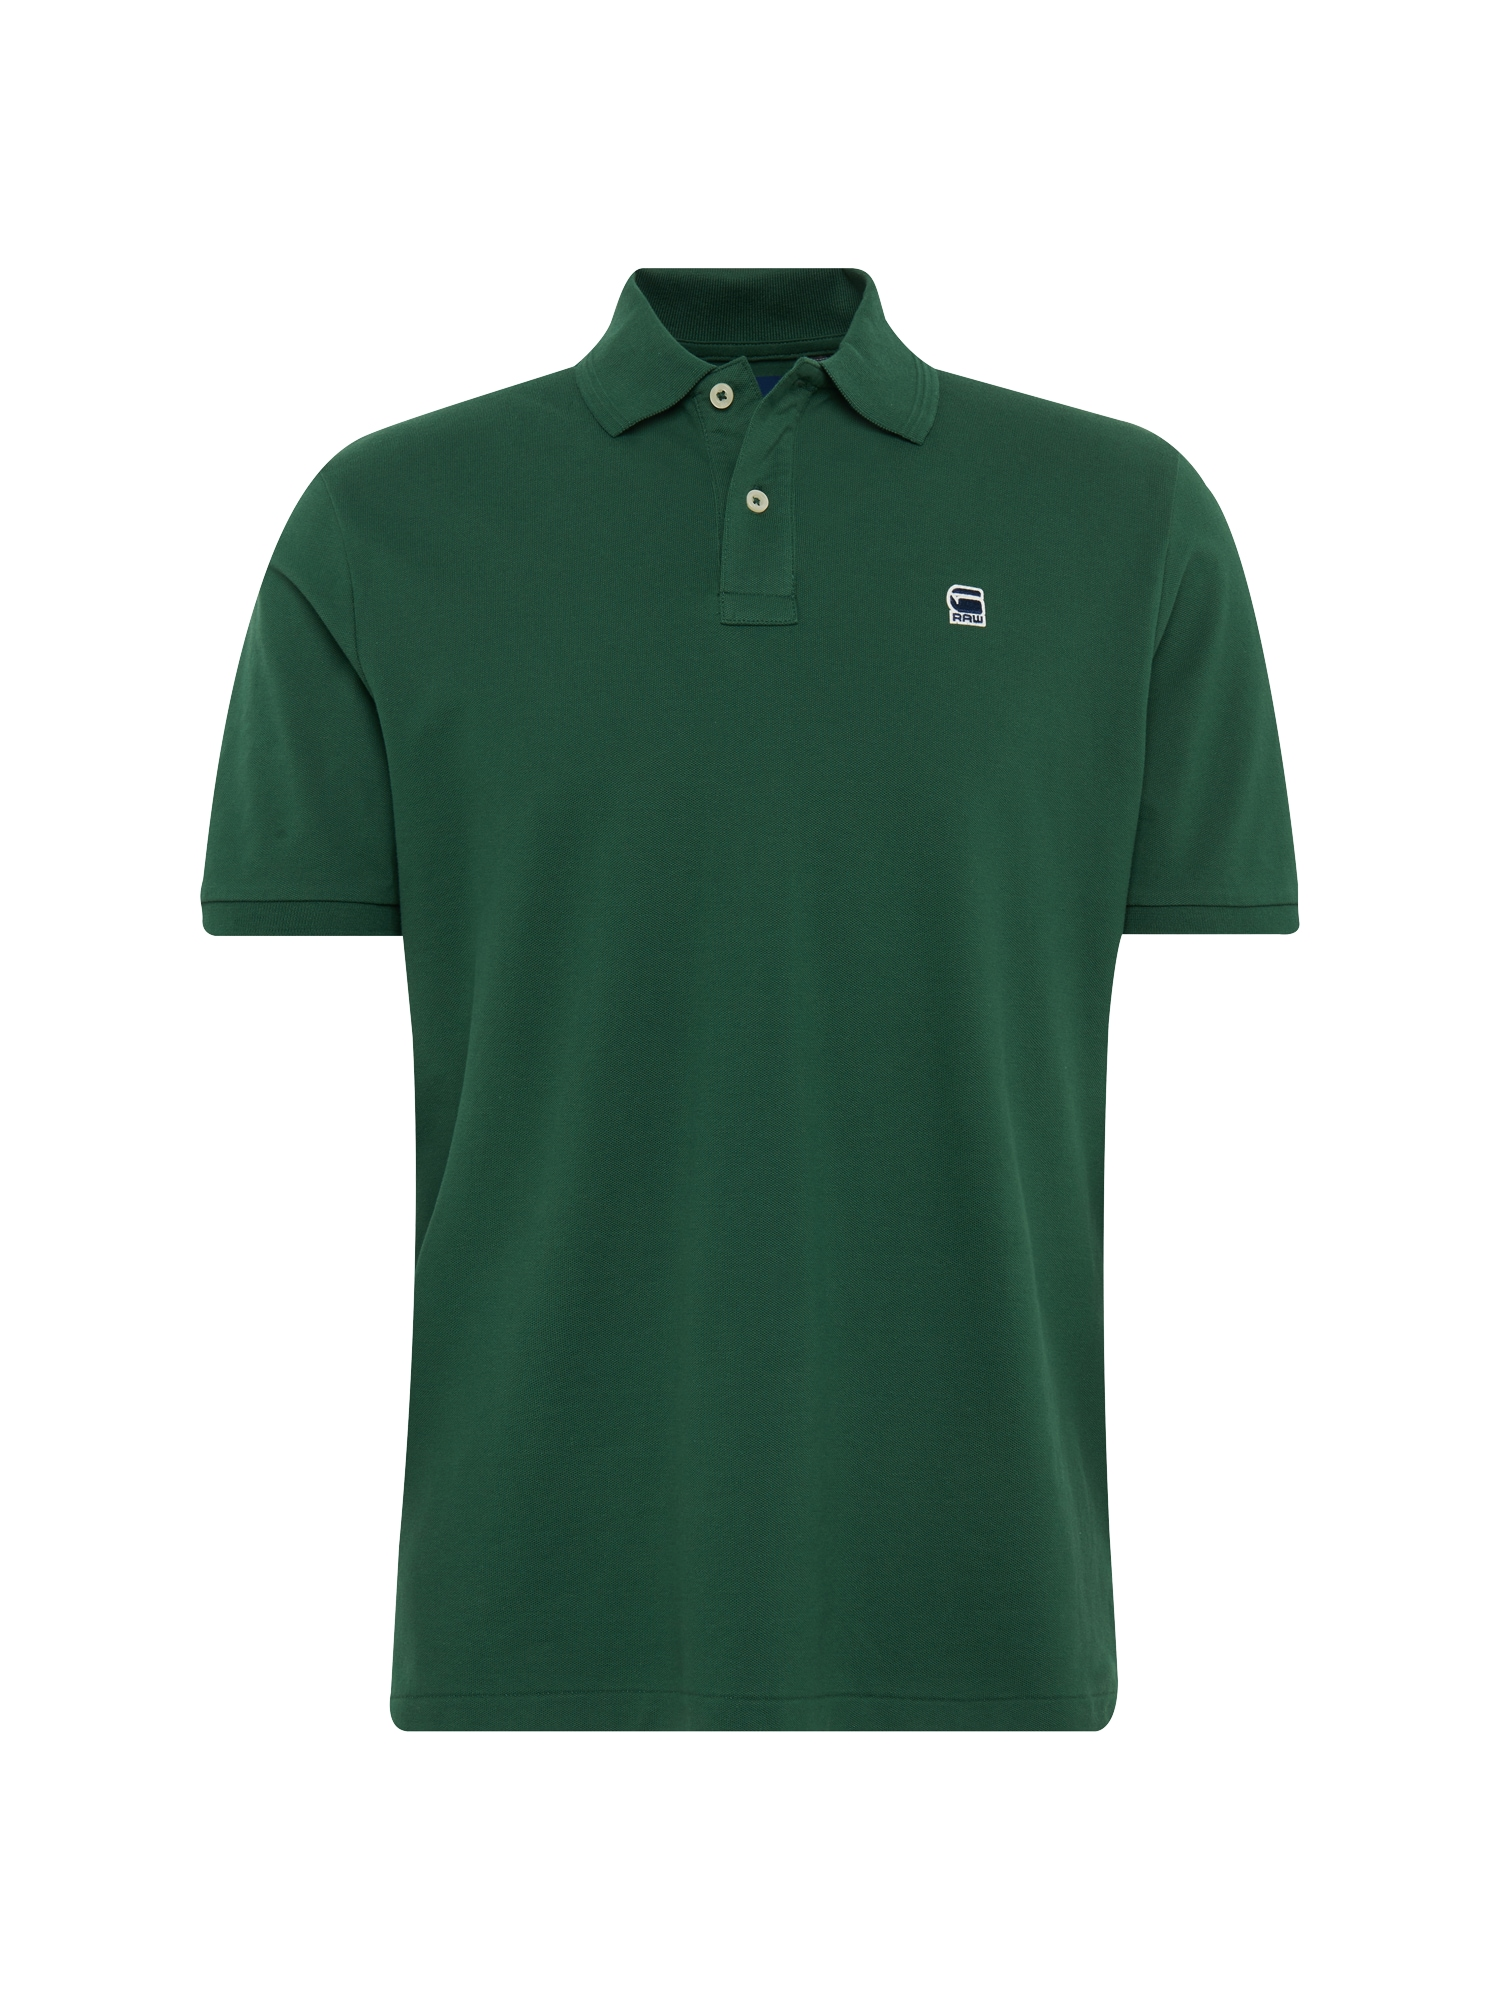 G-STAR RAW Heren Shirt Dunda groen